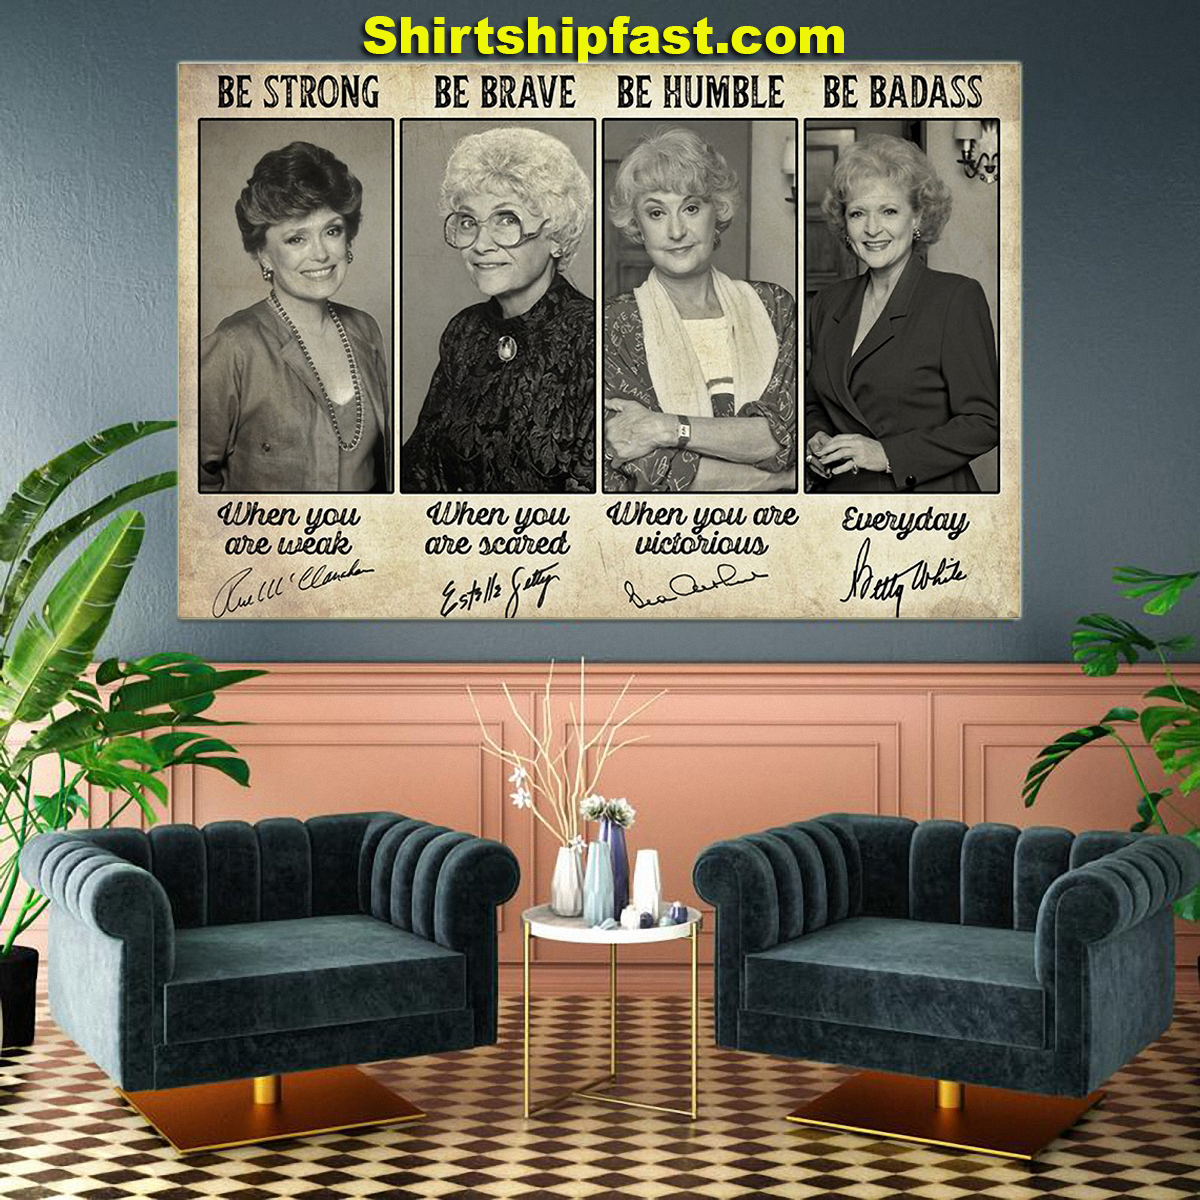 Be strong be brave be humble be badass Golden Girls signature poster